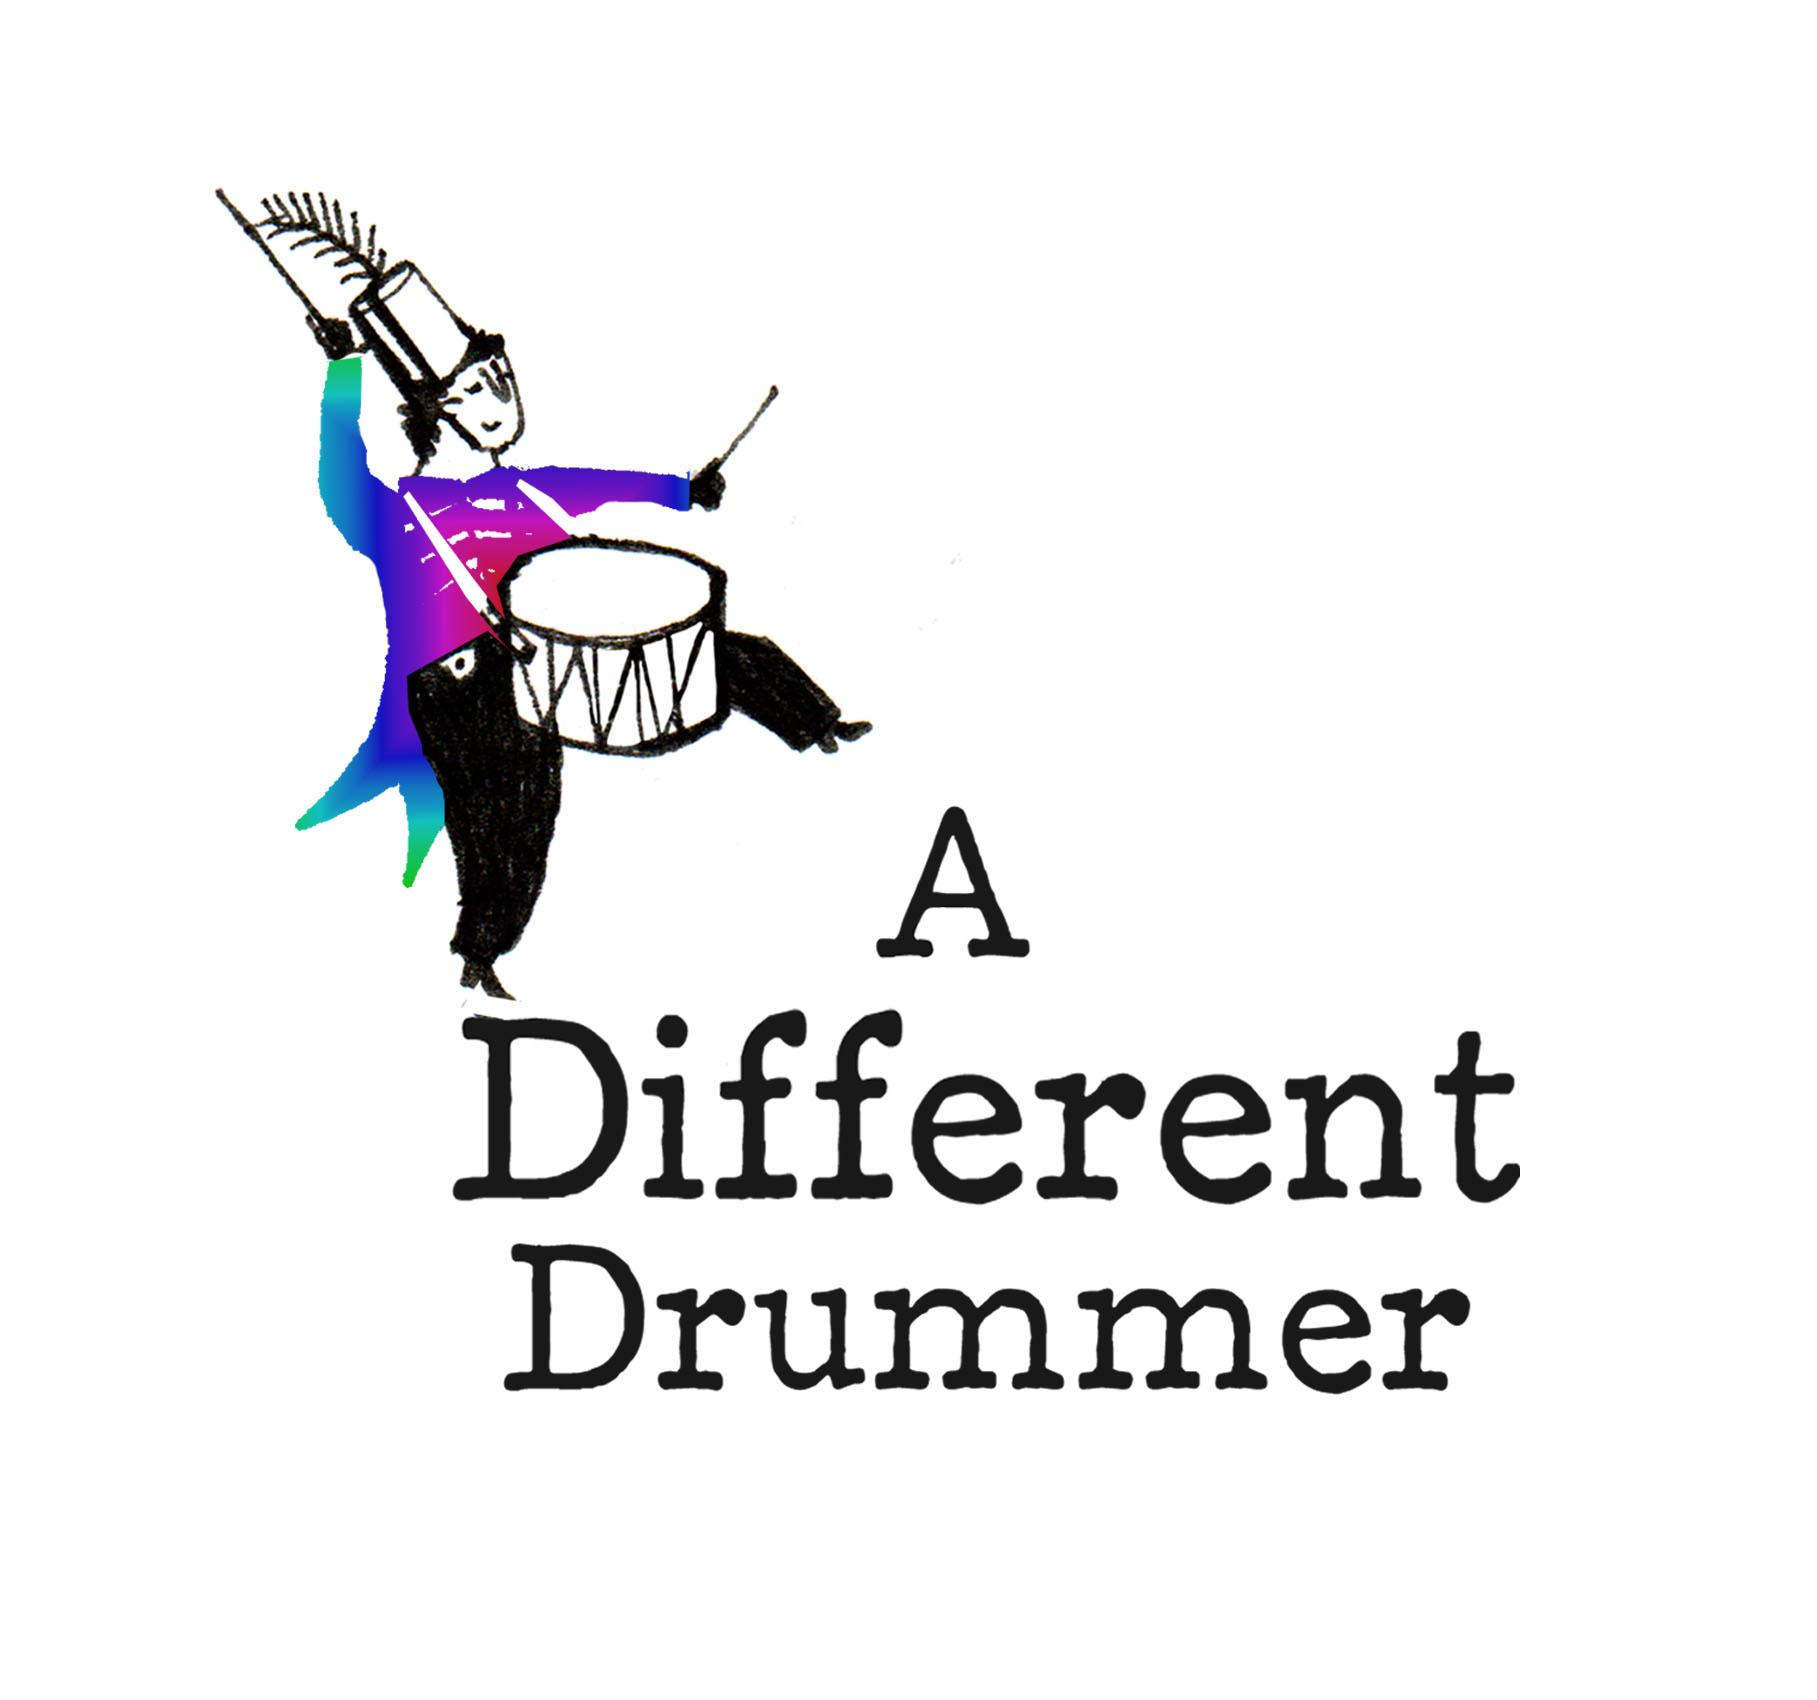 a different drummer career counselling